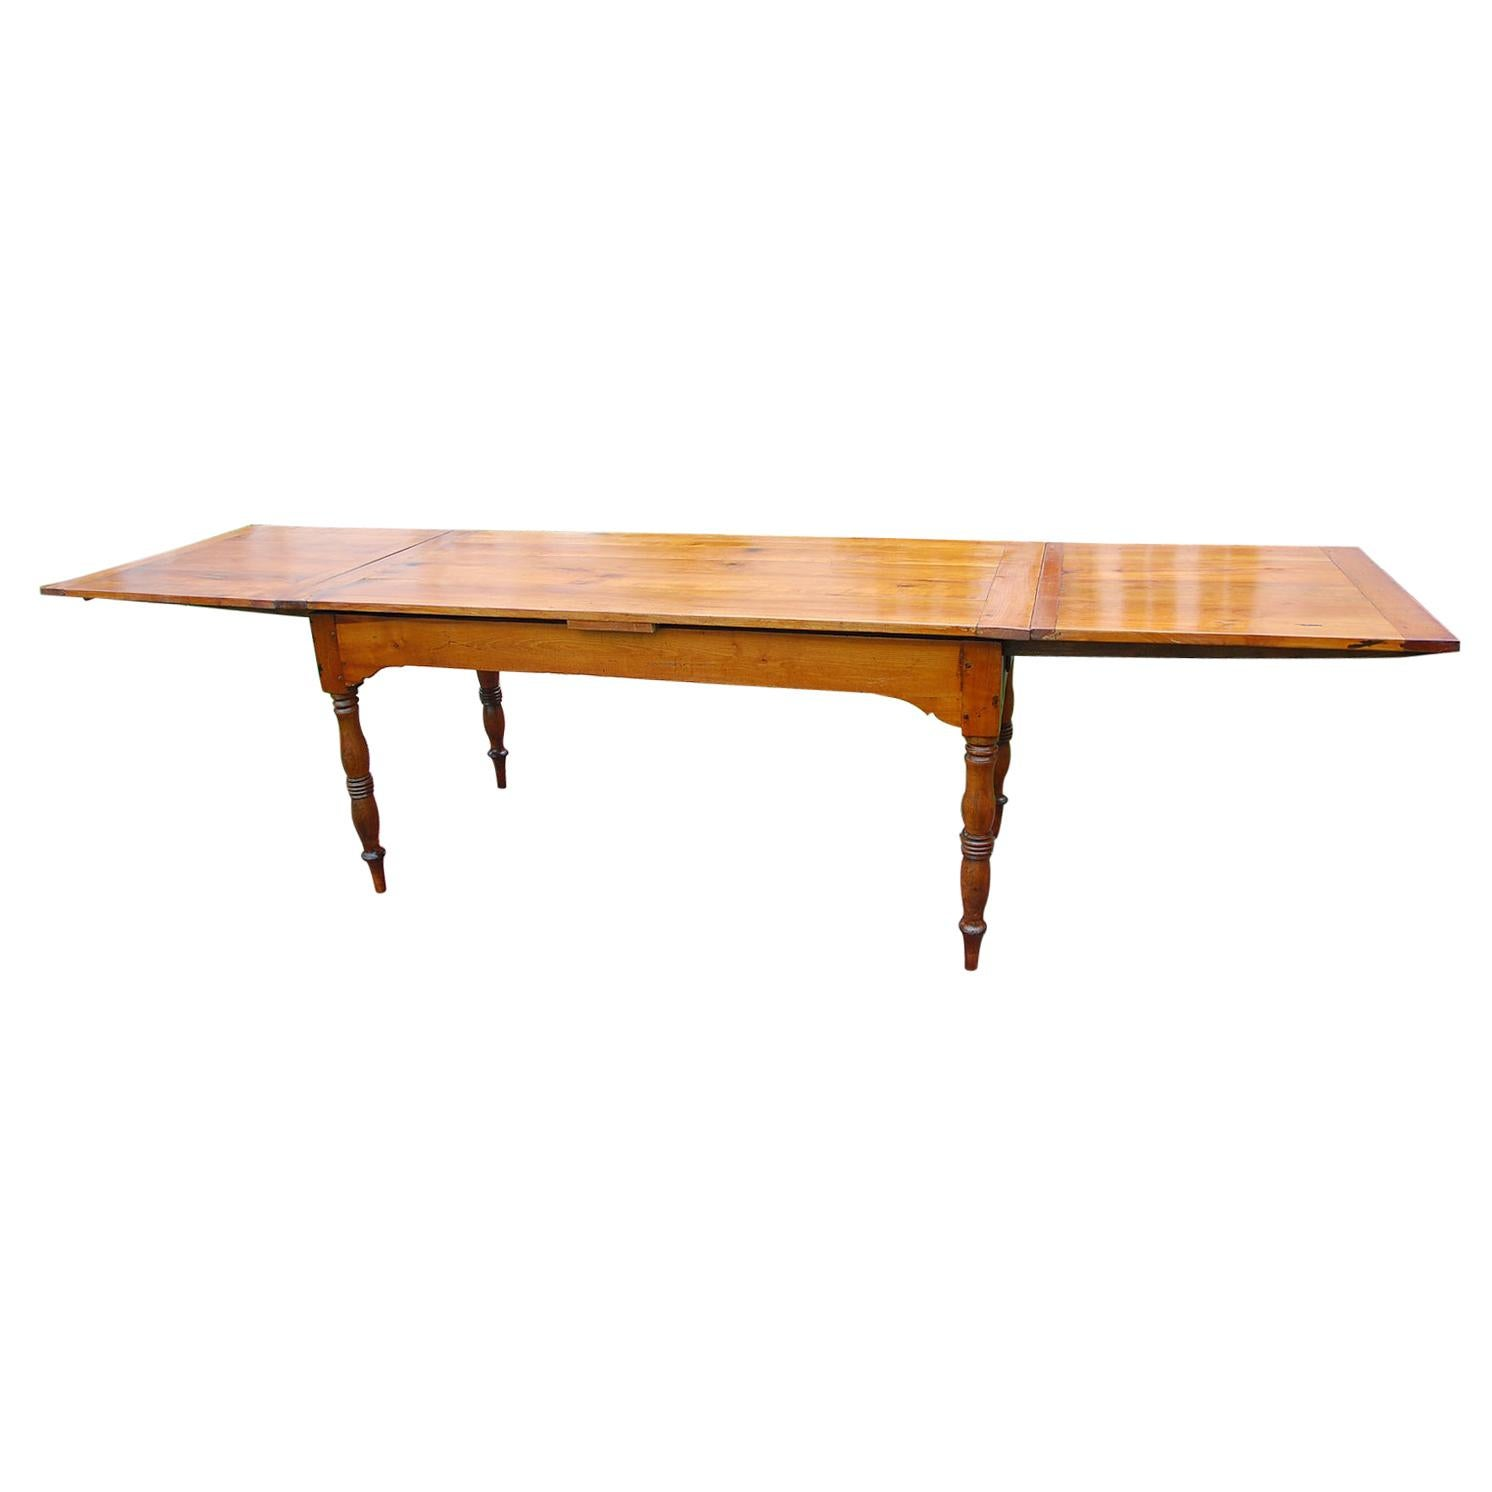 French Early 19th Century Farmhouse Cherry Double Extending Table Turned legs